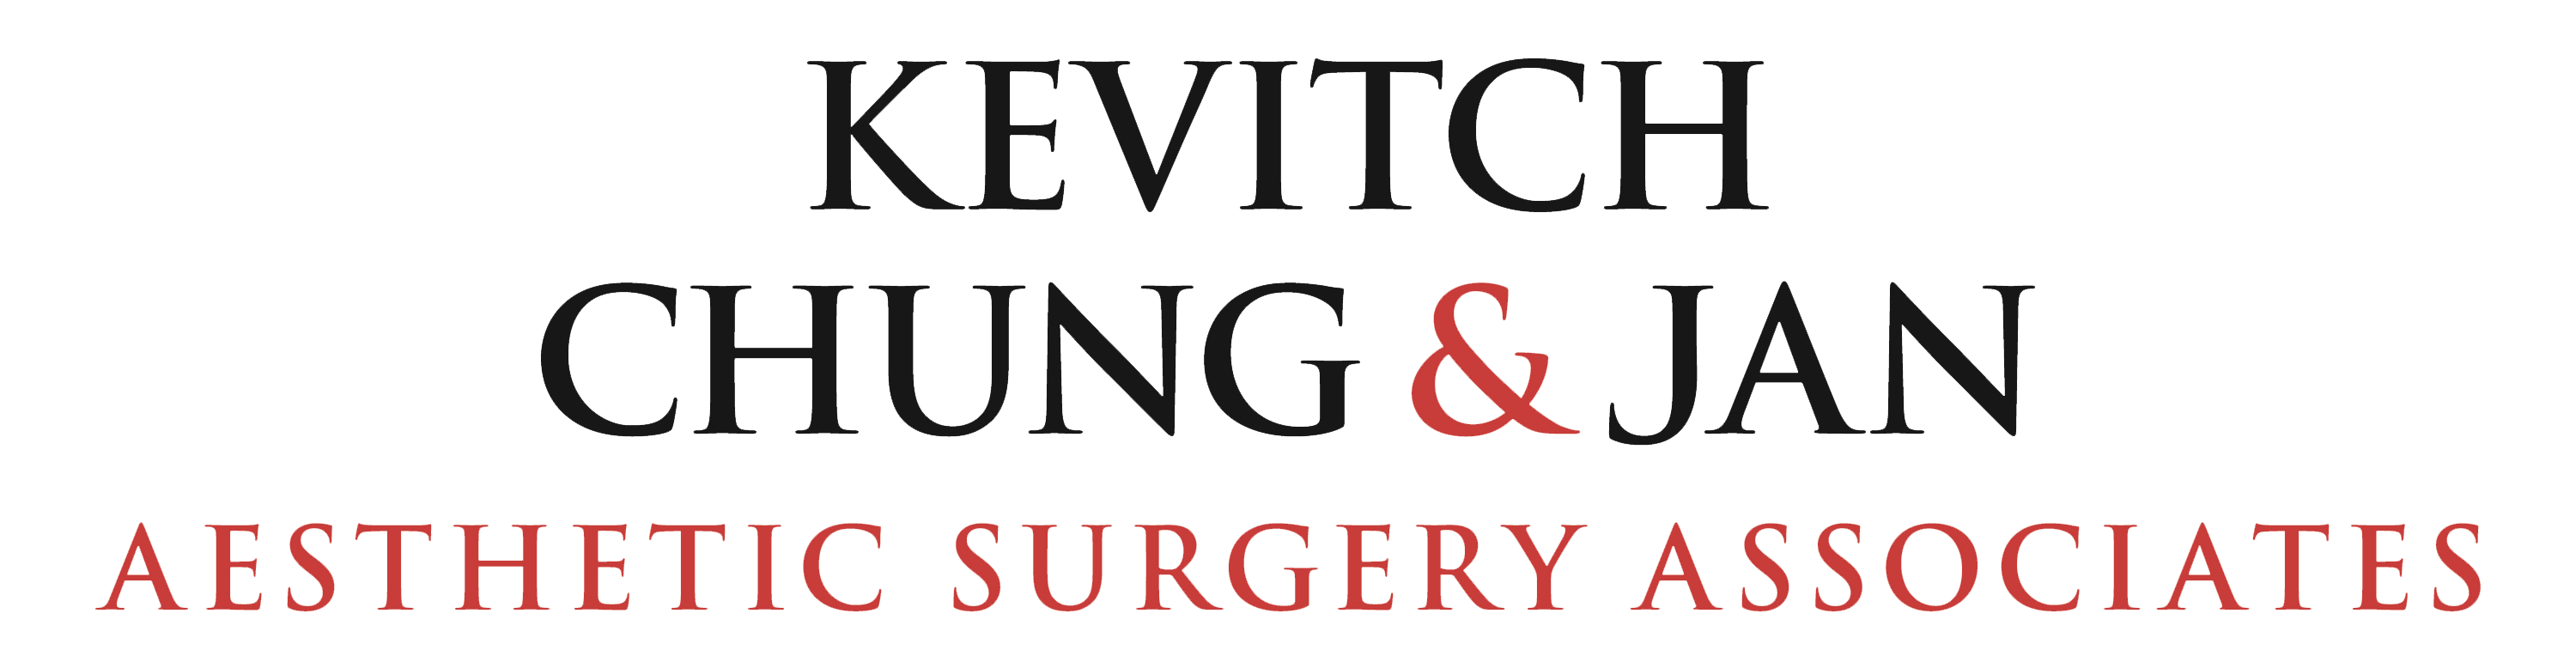 Plastic Surgery - Tummy Tuck, Breast Enhancement, Facelift